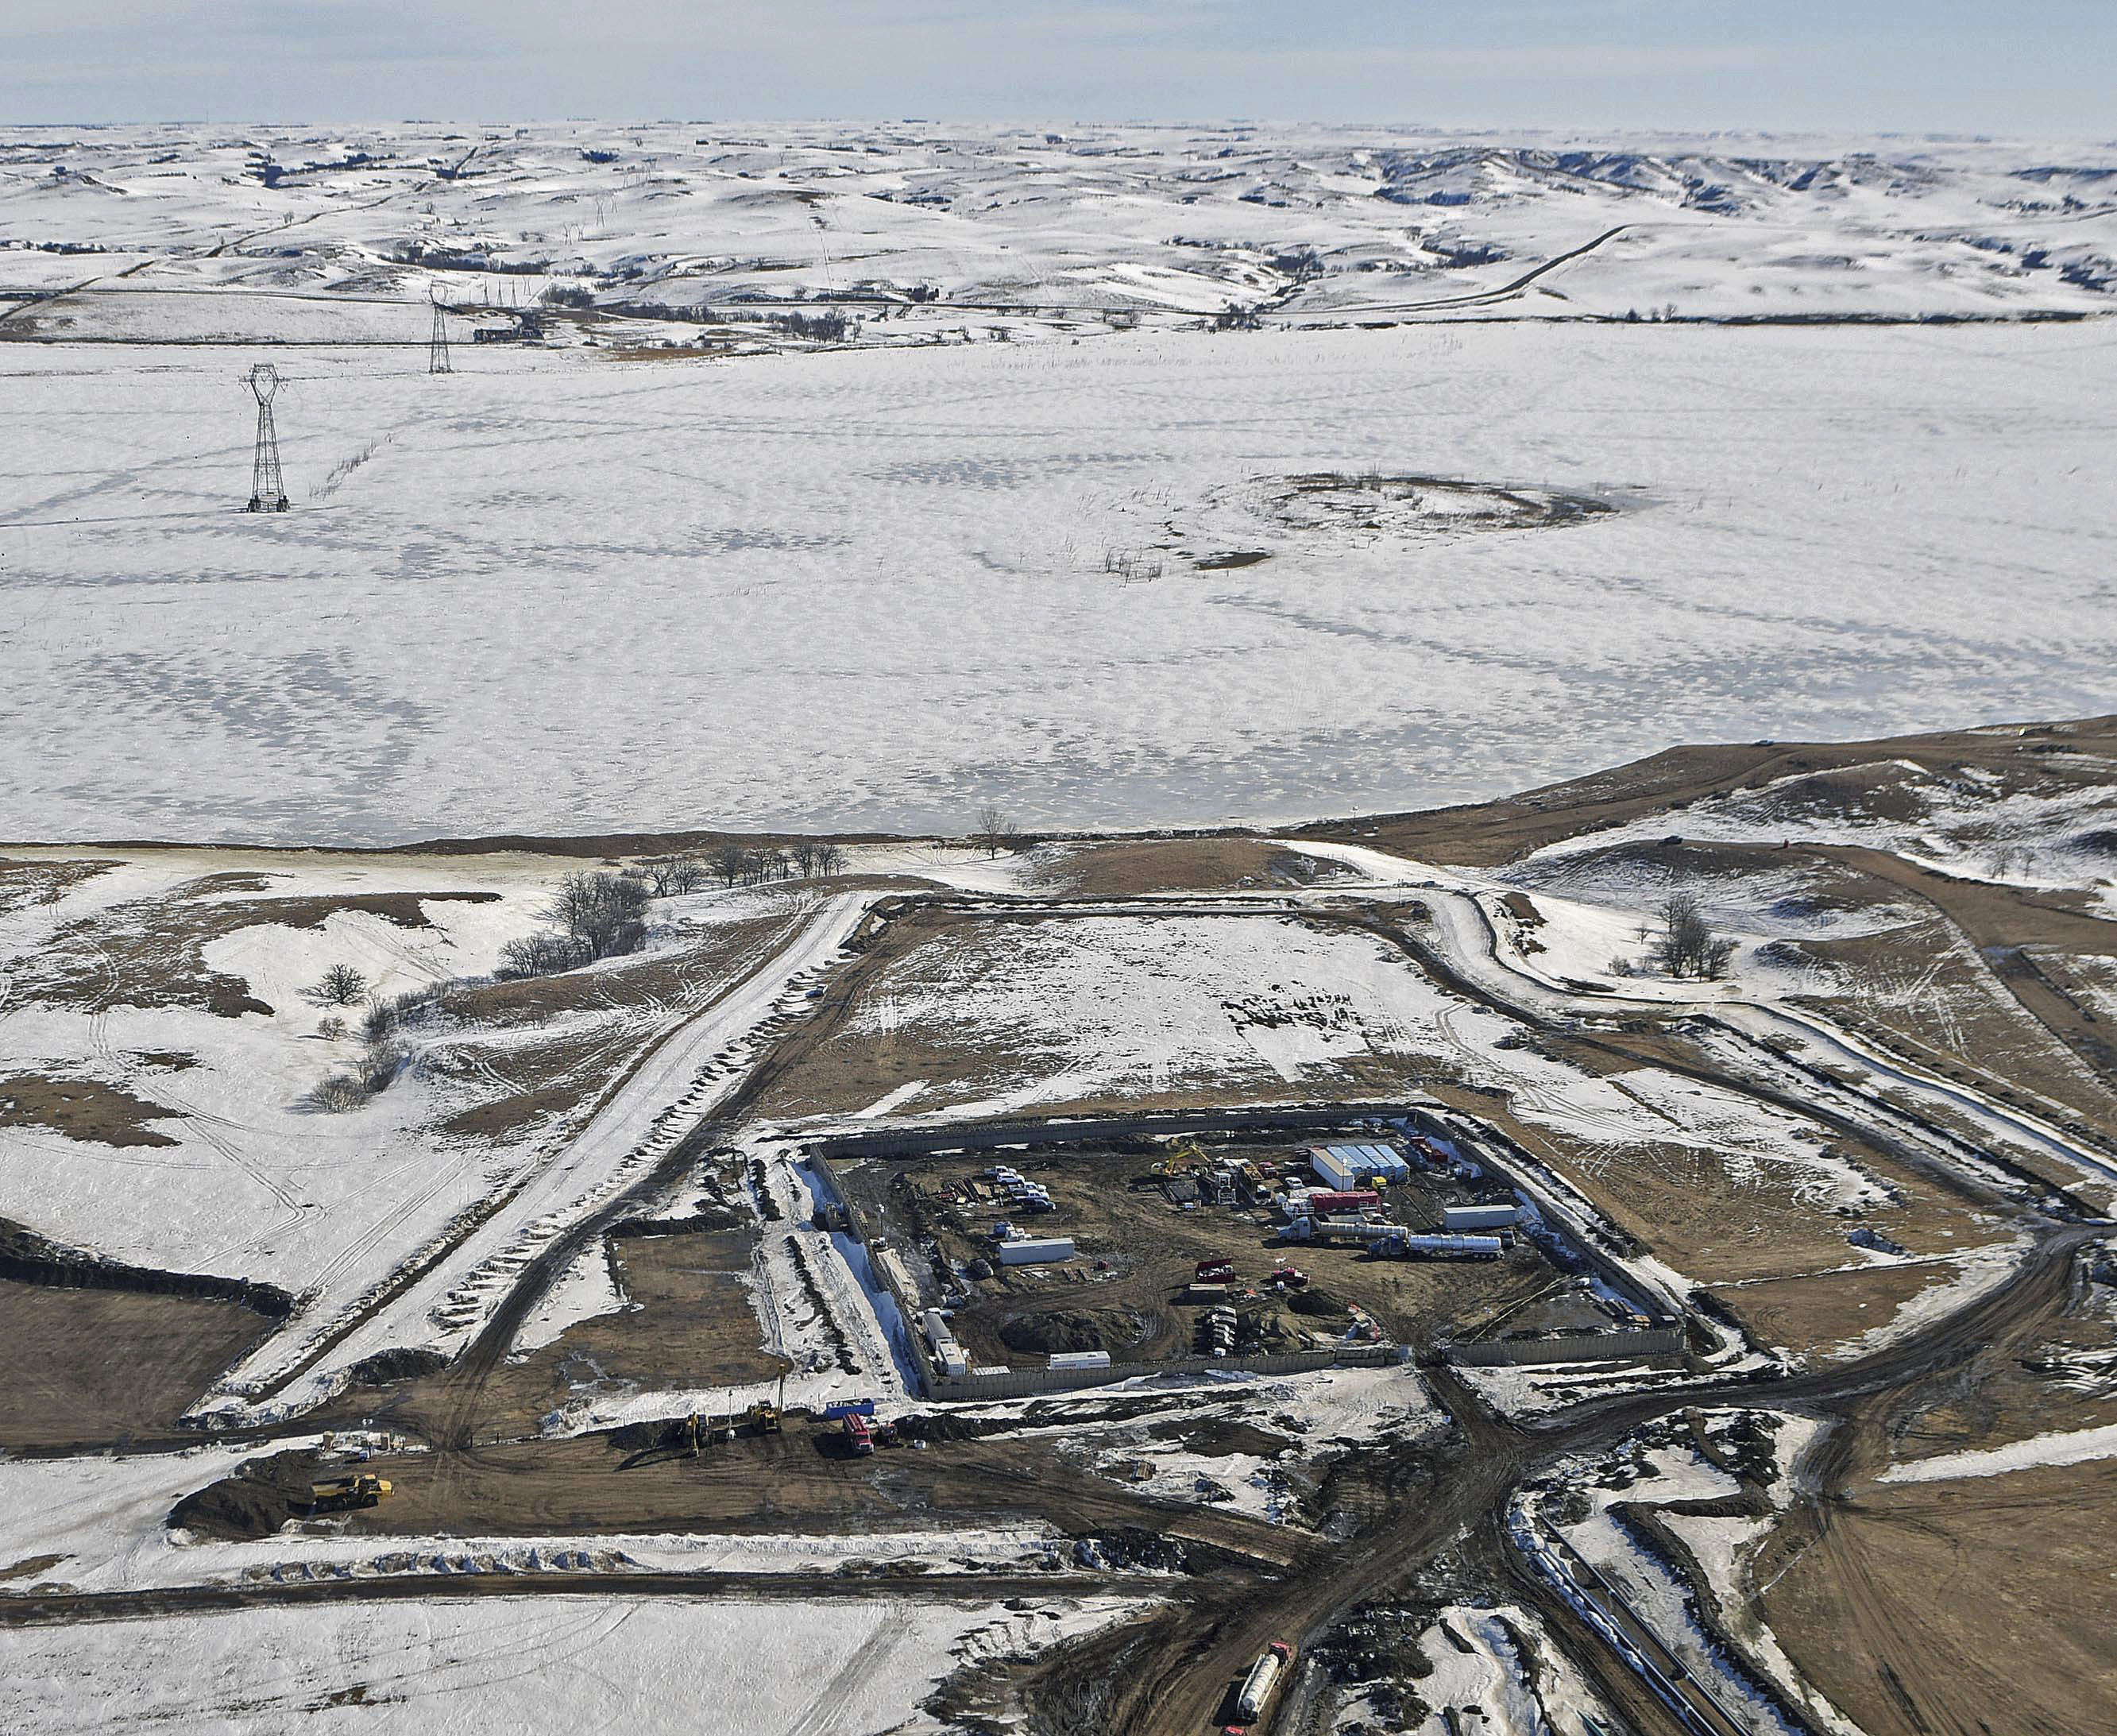 Oil Pipeline This Feb. 13, 2017, aerial file photo, shows a site where the final phase of the Dakota Access pipeline is taking place with boring equipment routing the pipeline underground and across Lake Oahe to connect with the existing pipeline in Emmons County near Cannon Ball, N.D. Federal Judge James Boasberg on Tuesday, March 14 denied a request by the Standing Rock and Cheyenne River Sioux to stop oil from flowing while they appeal his earlier decision allowing pipeline construction to finish.